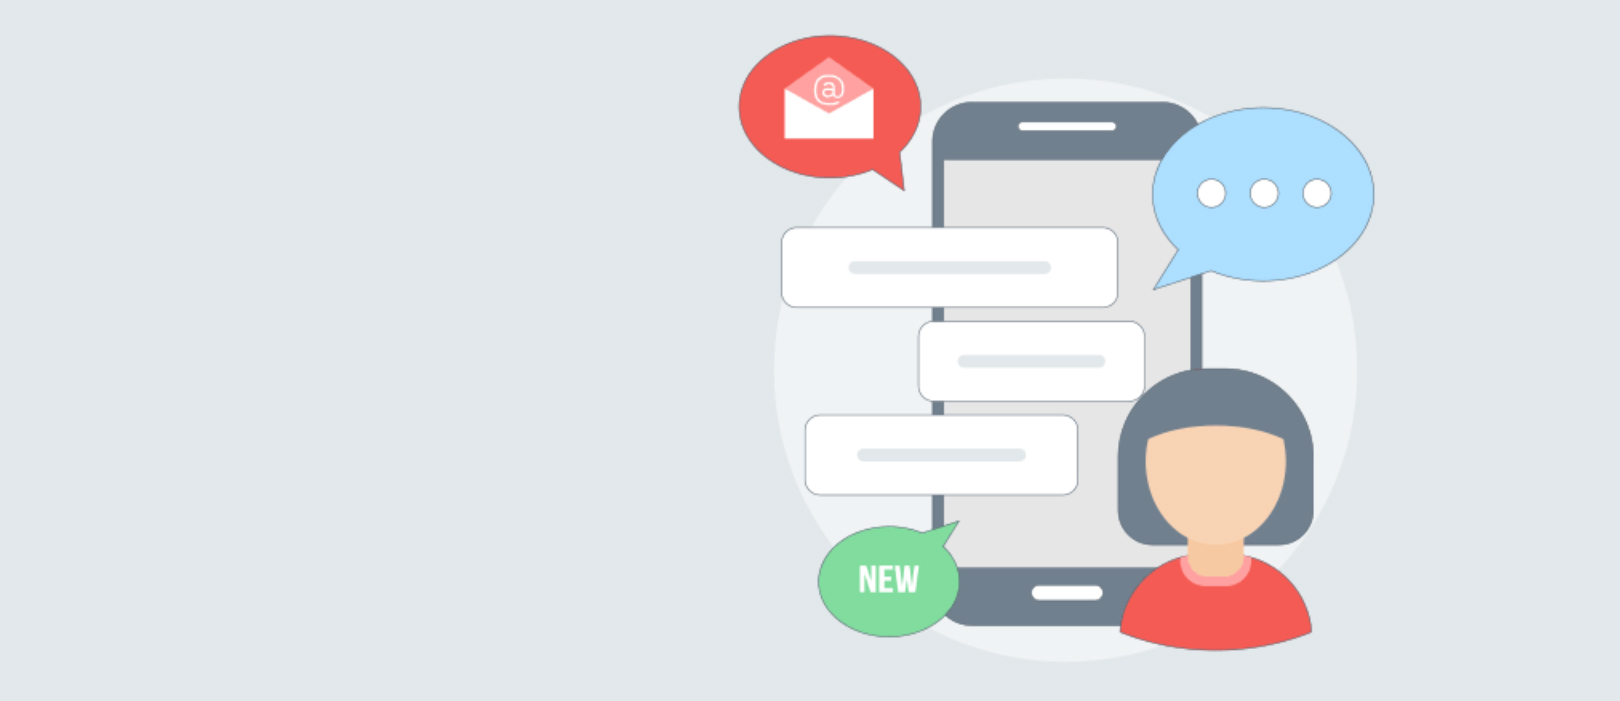 Frame 1 10 1 - How to create a messaging app